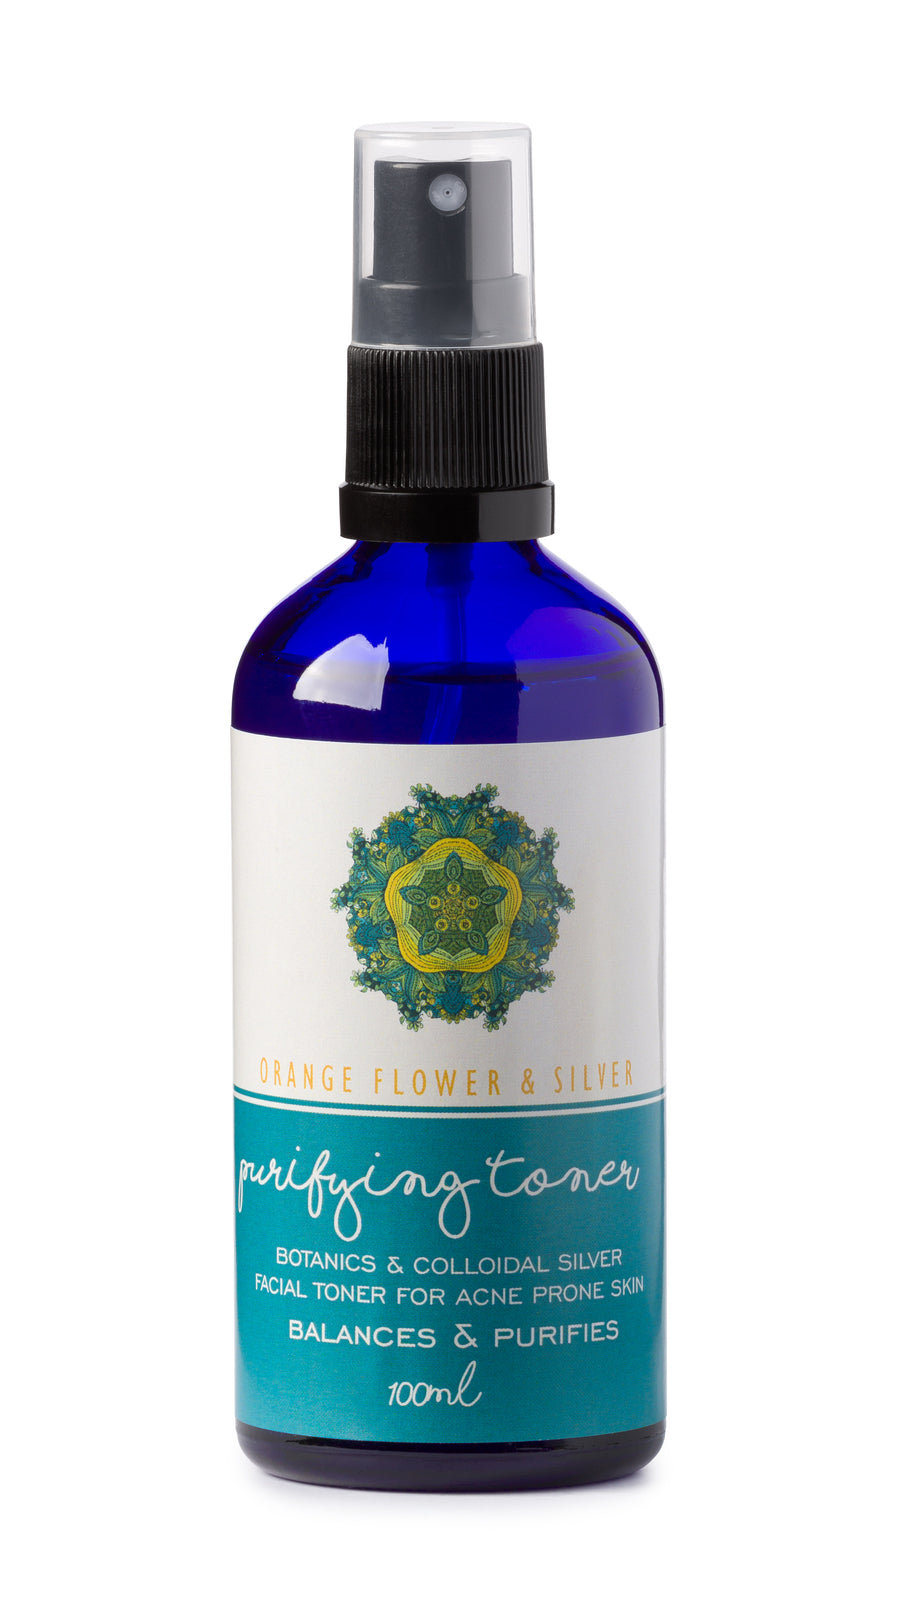 Orange Flower & Silver Purifying Toner